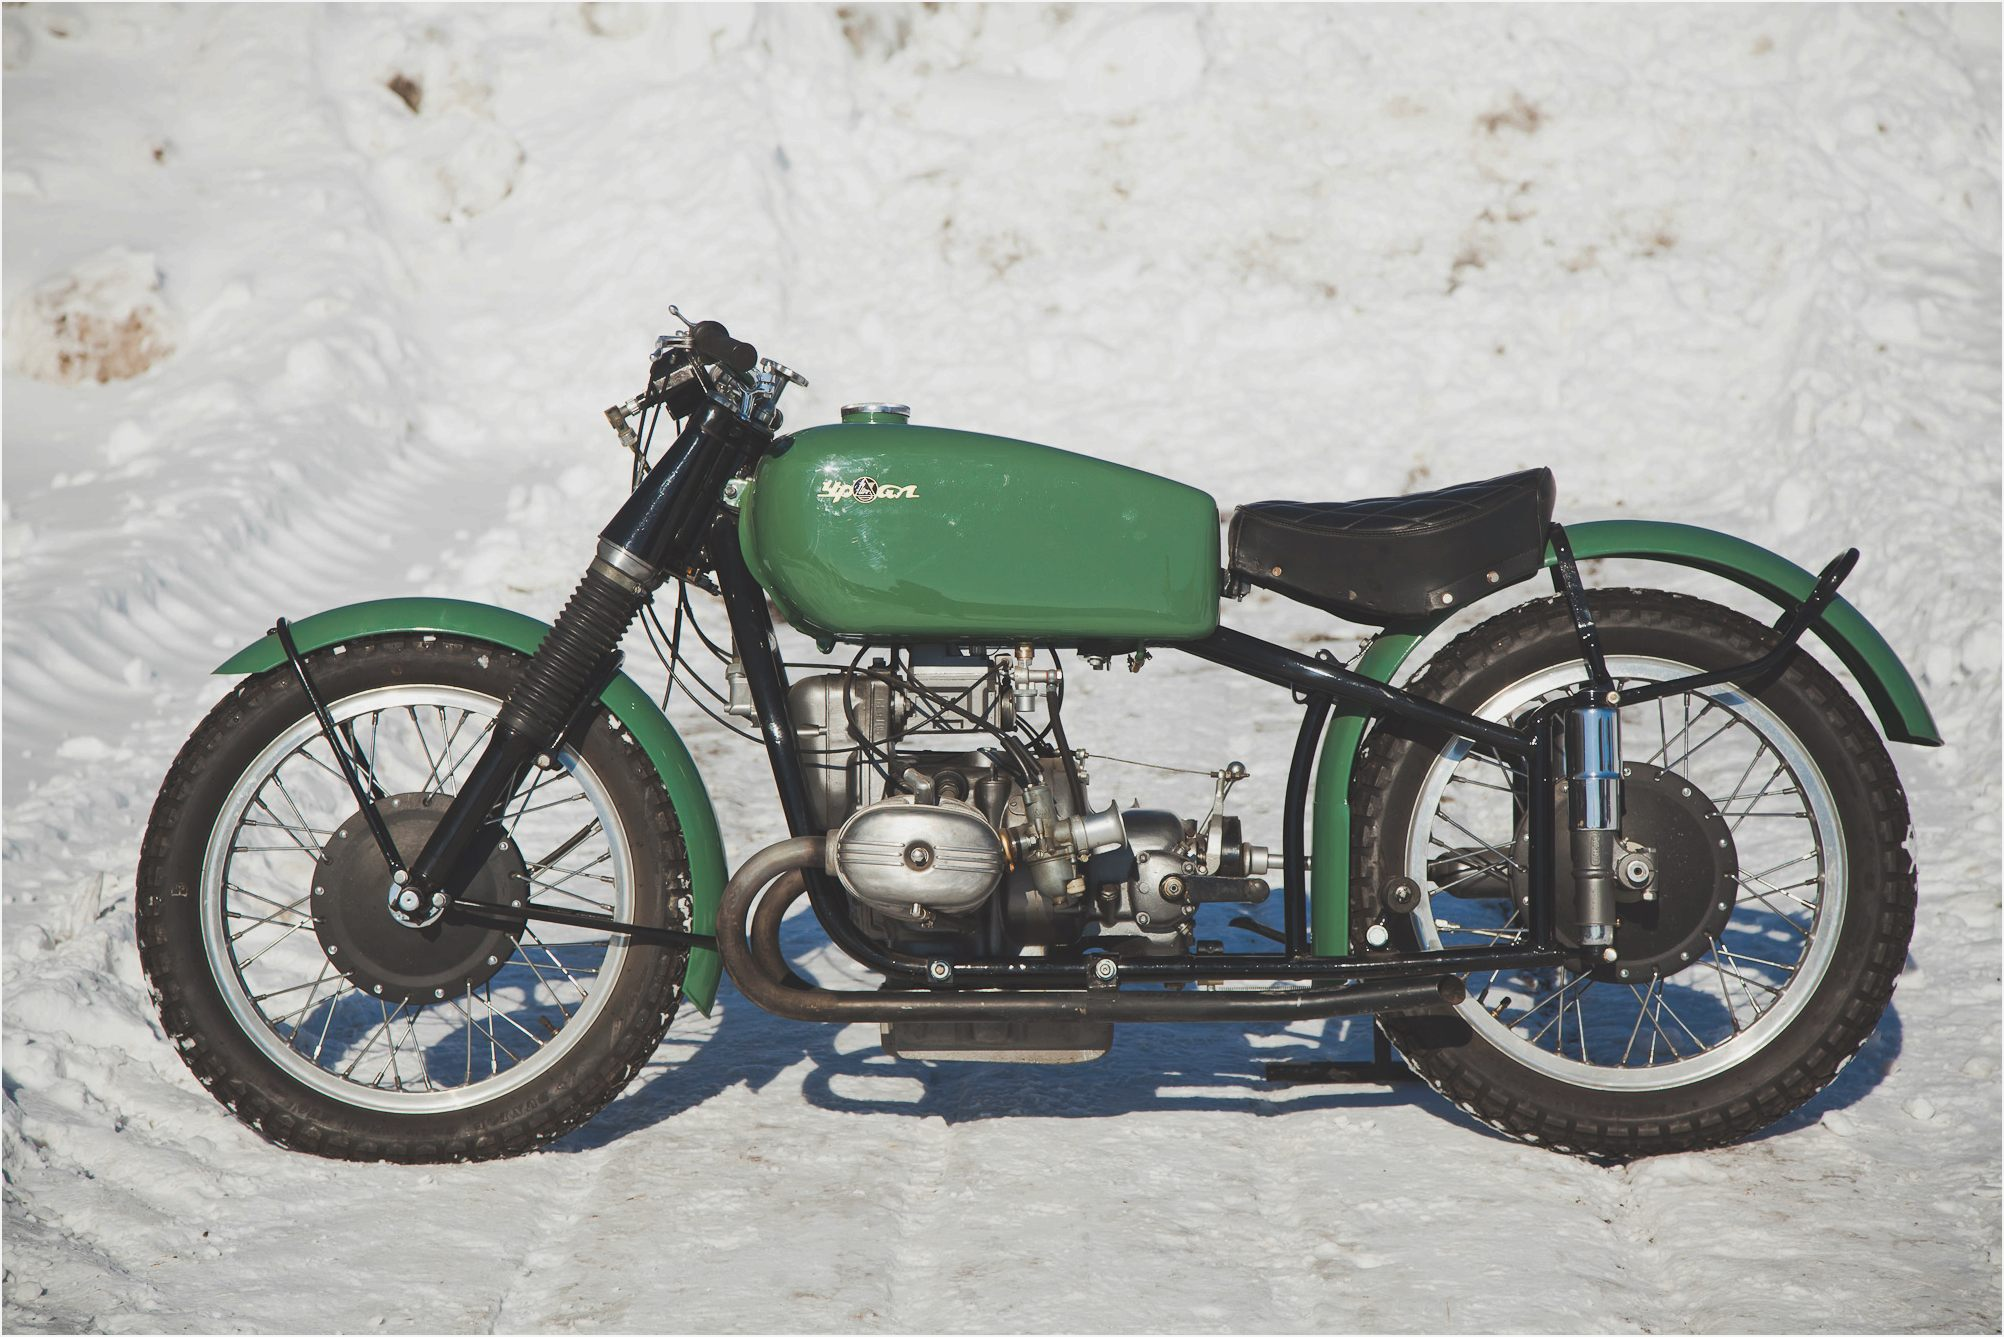 Ural M-63 with sidecar 1978 images #127236